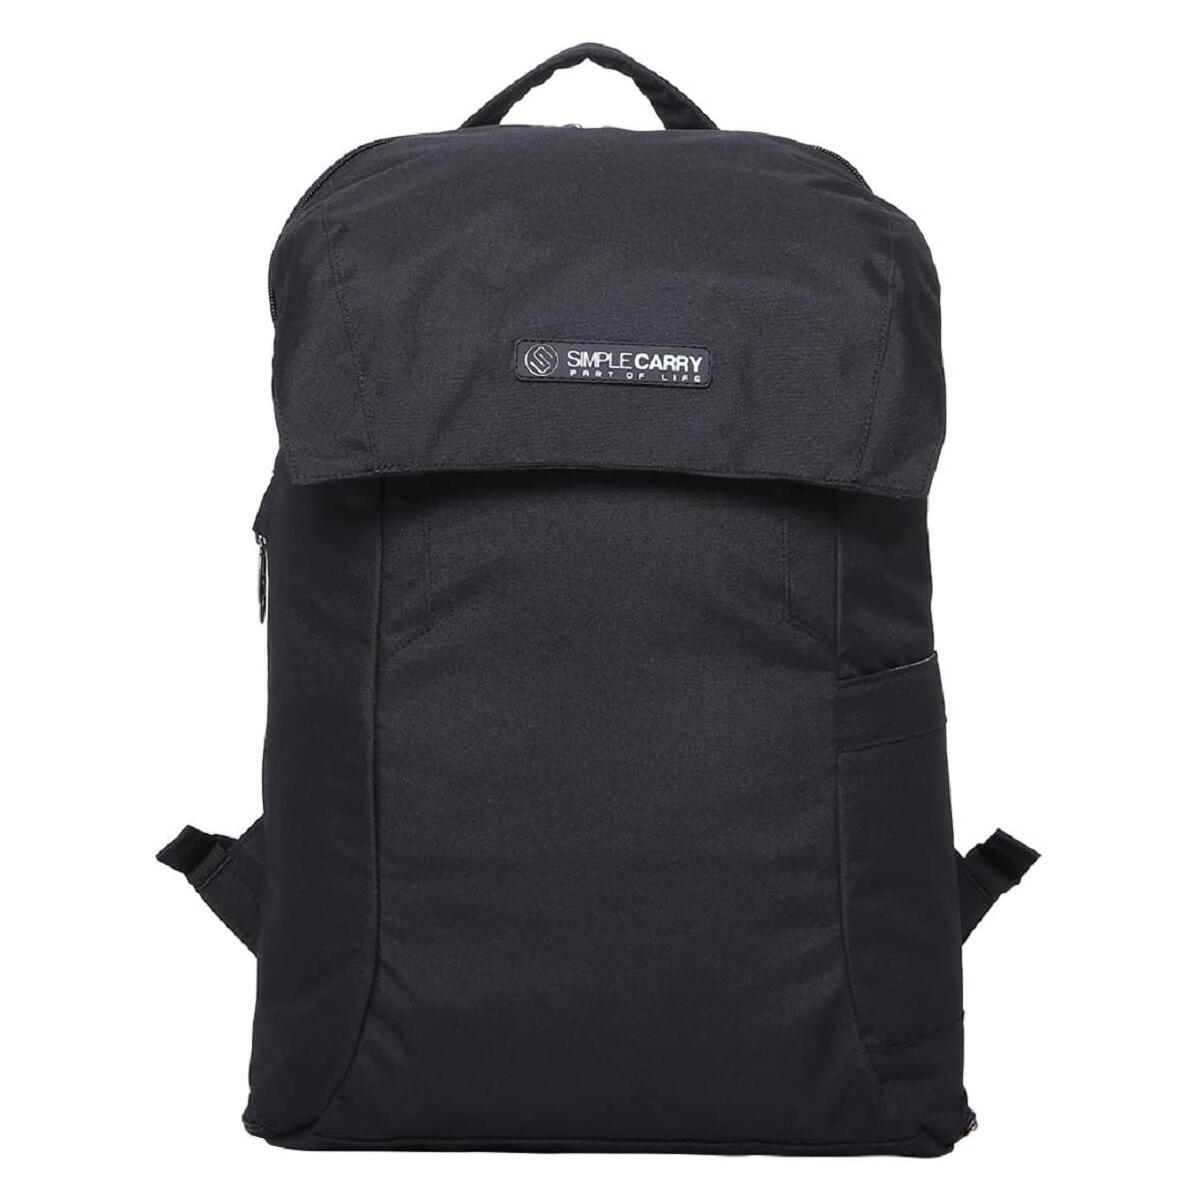 SIMPLECARRY Mattan2 Office College School Travel Laptop Backpack –Water Resistant and Durable Outdoor Backpack for Men and Women (Black)